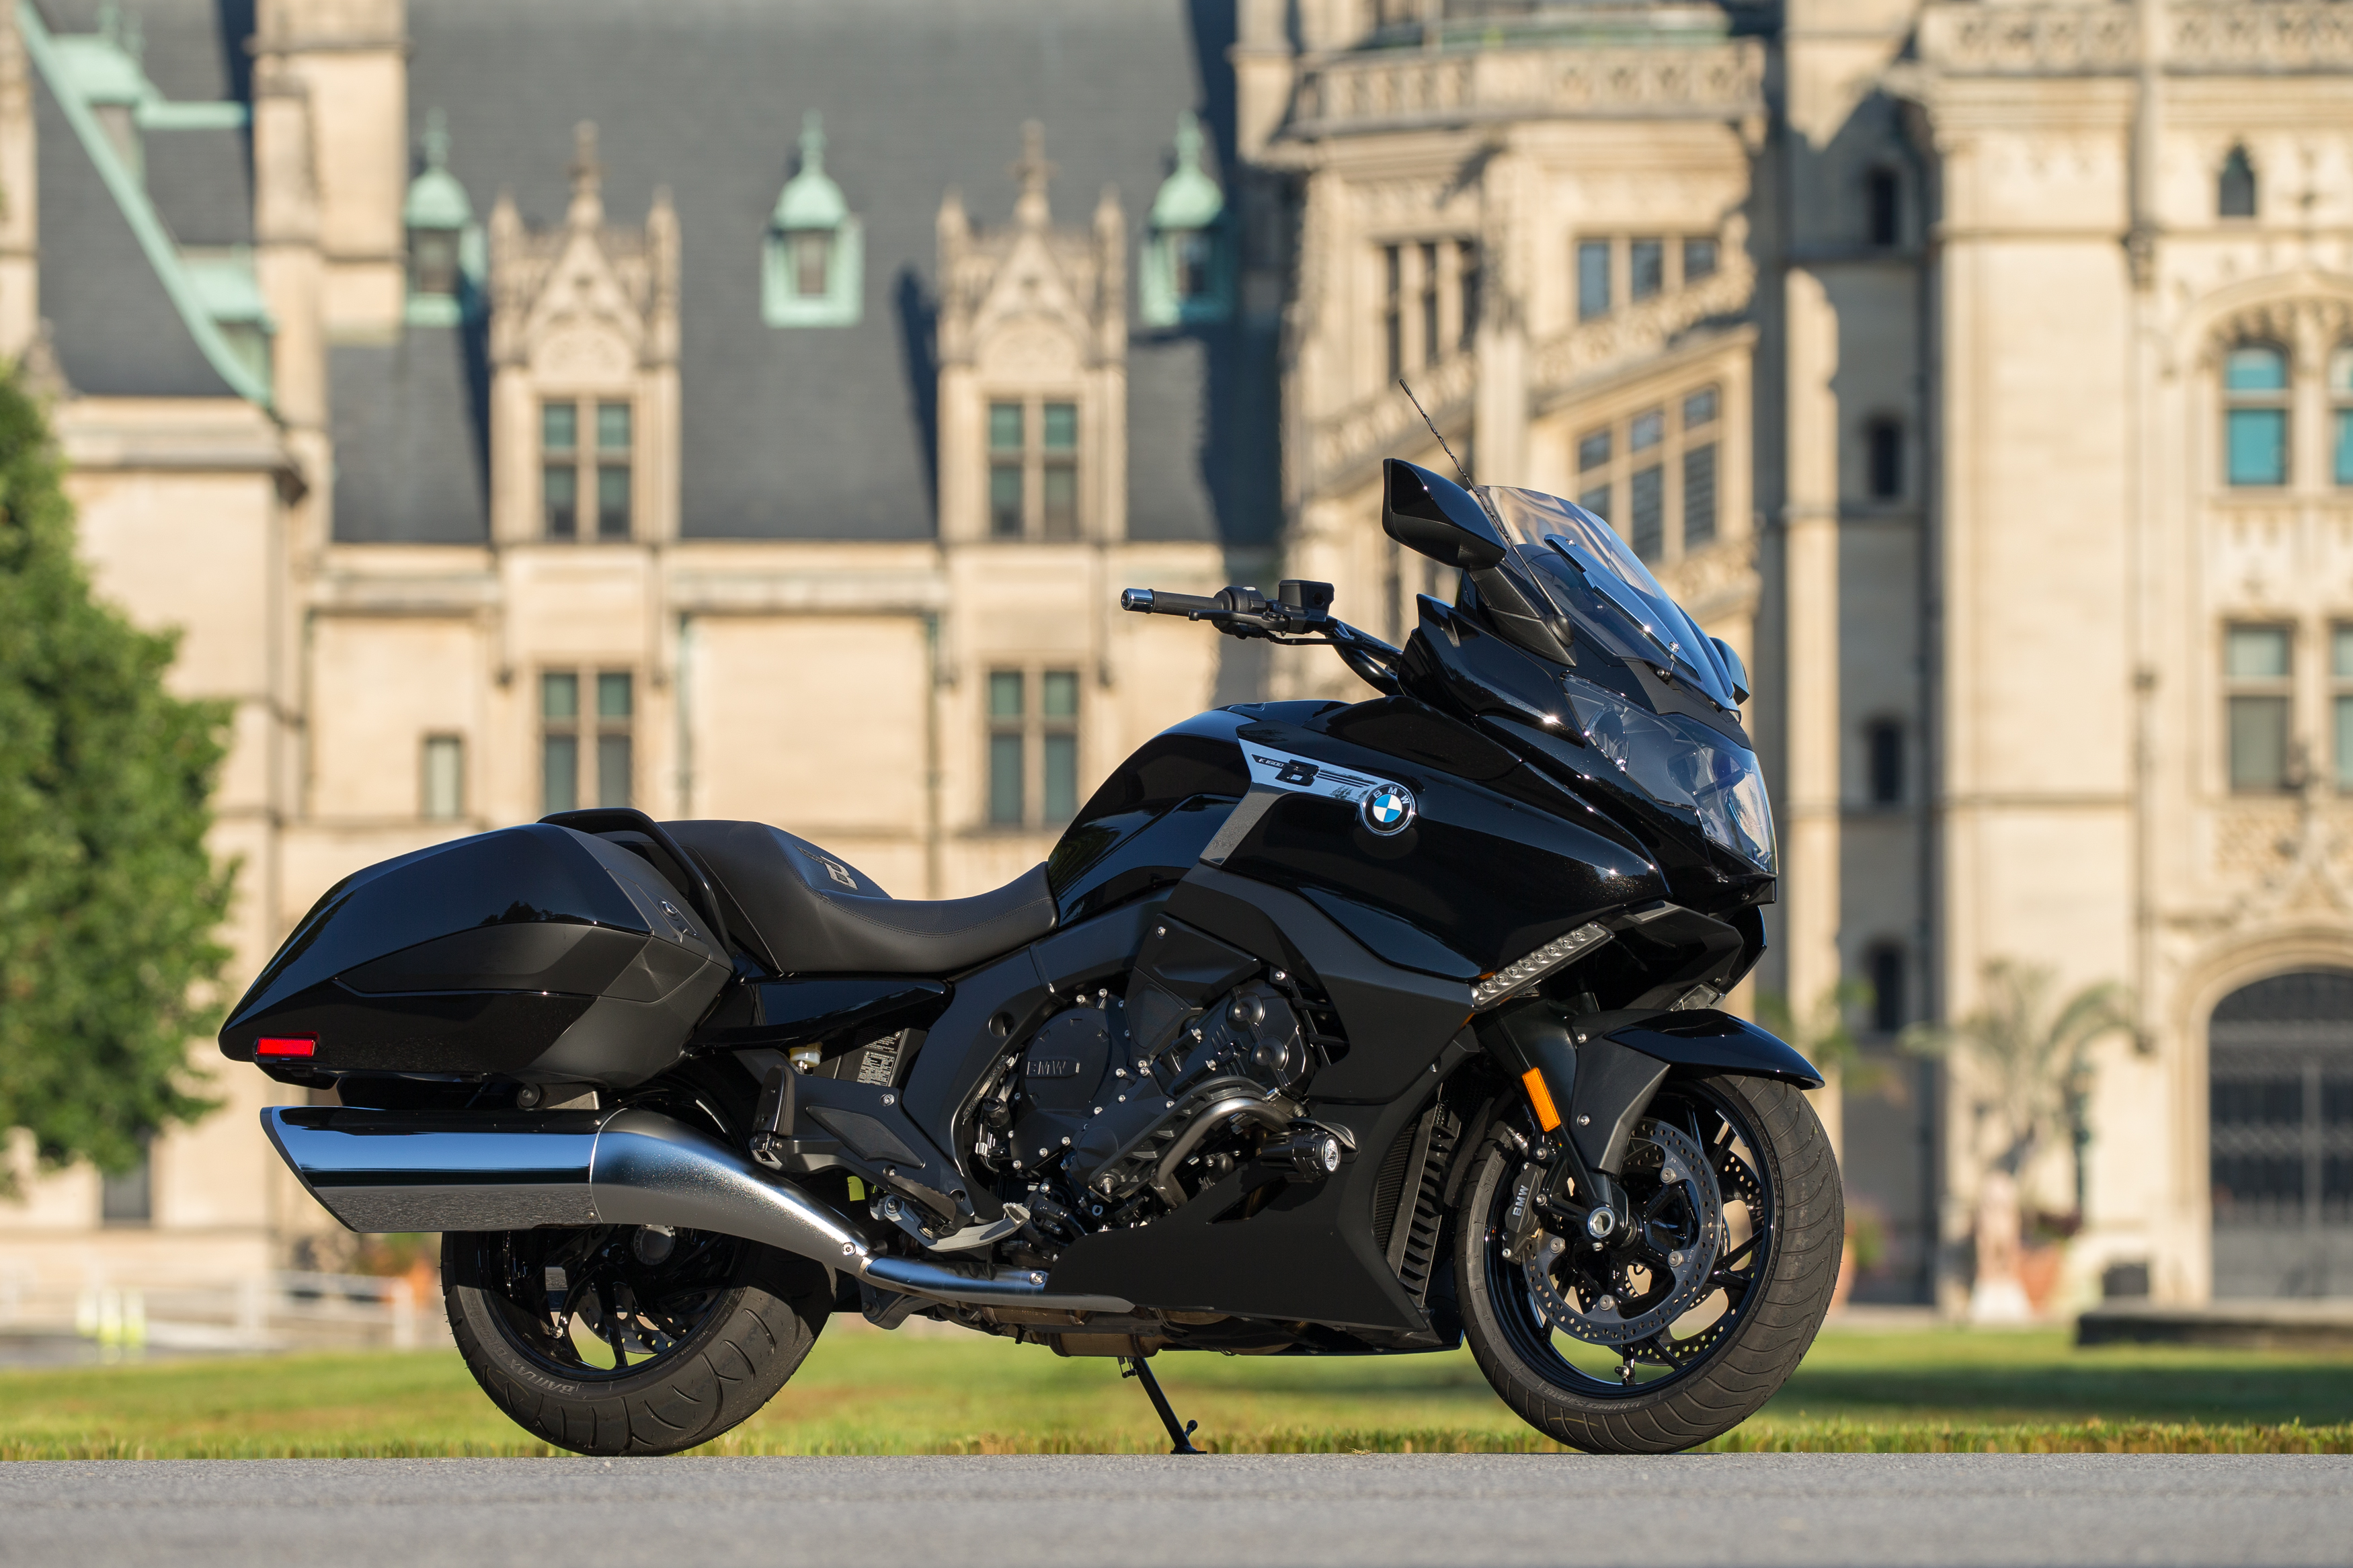 The BMW K 1600 B motorcycle.